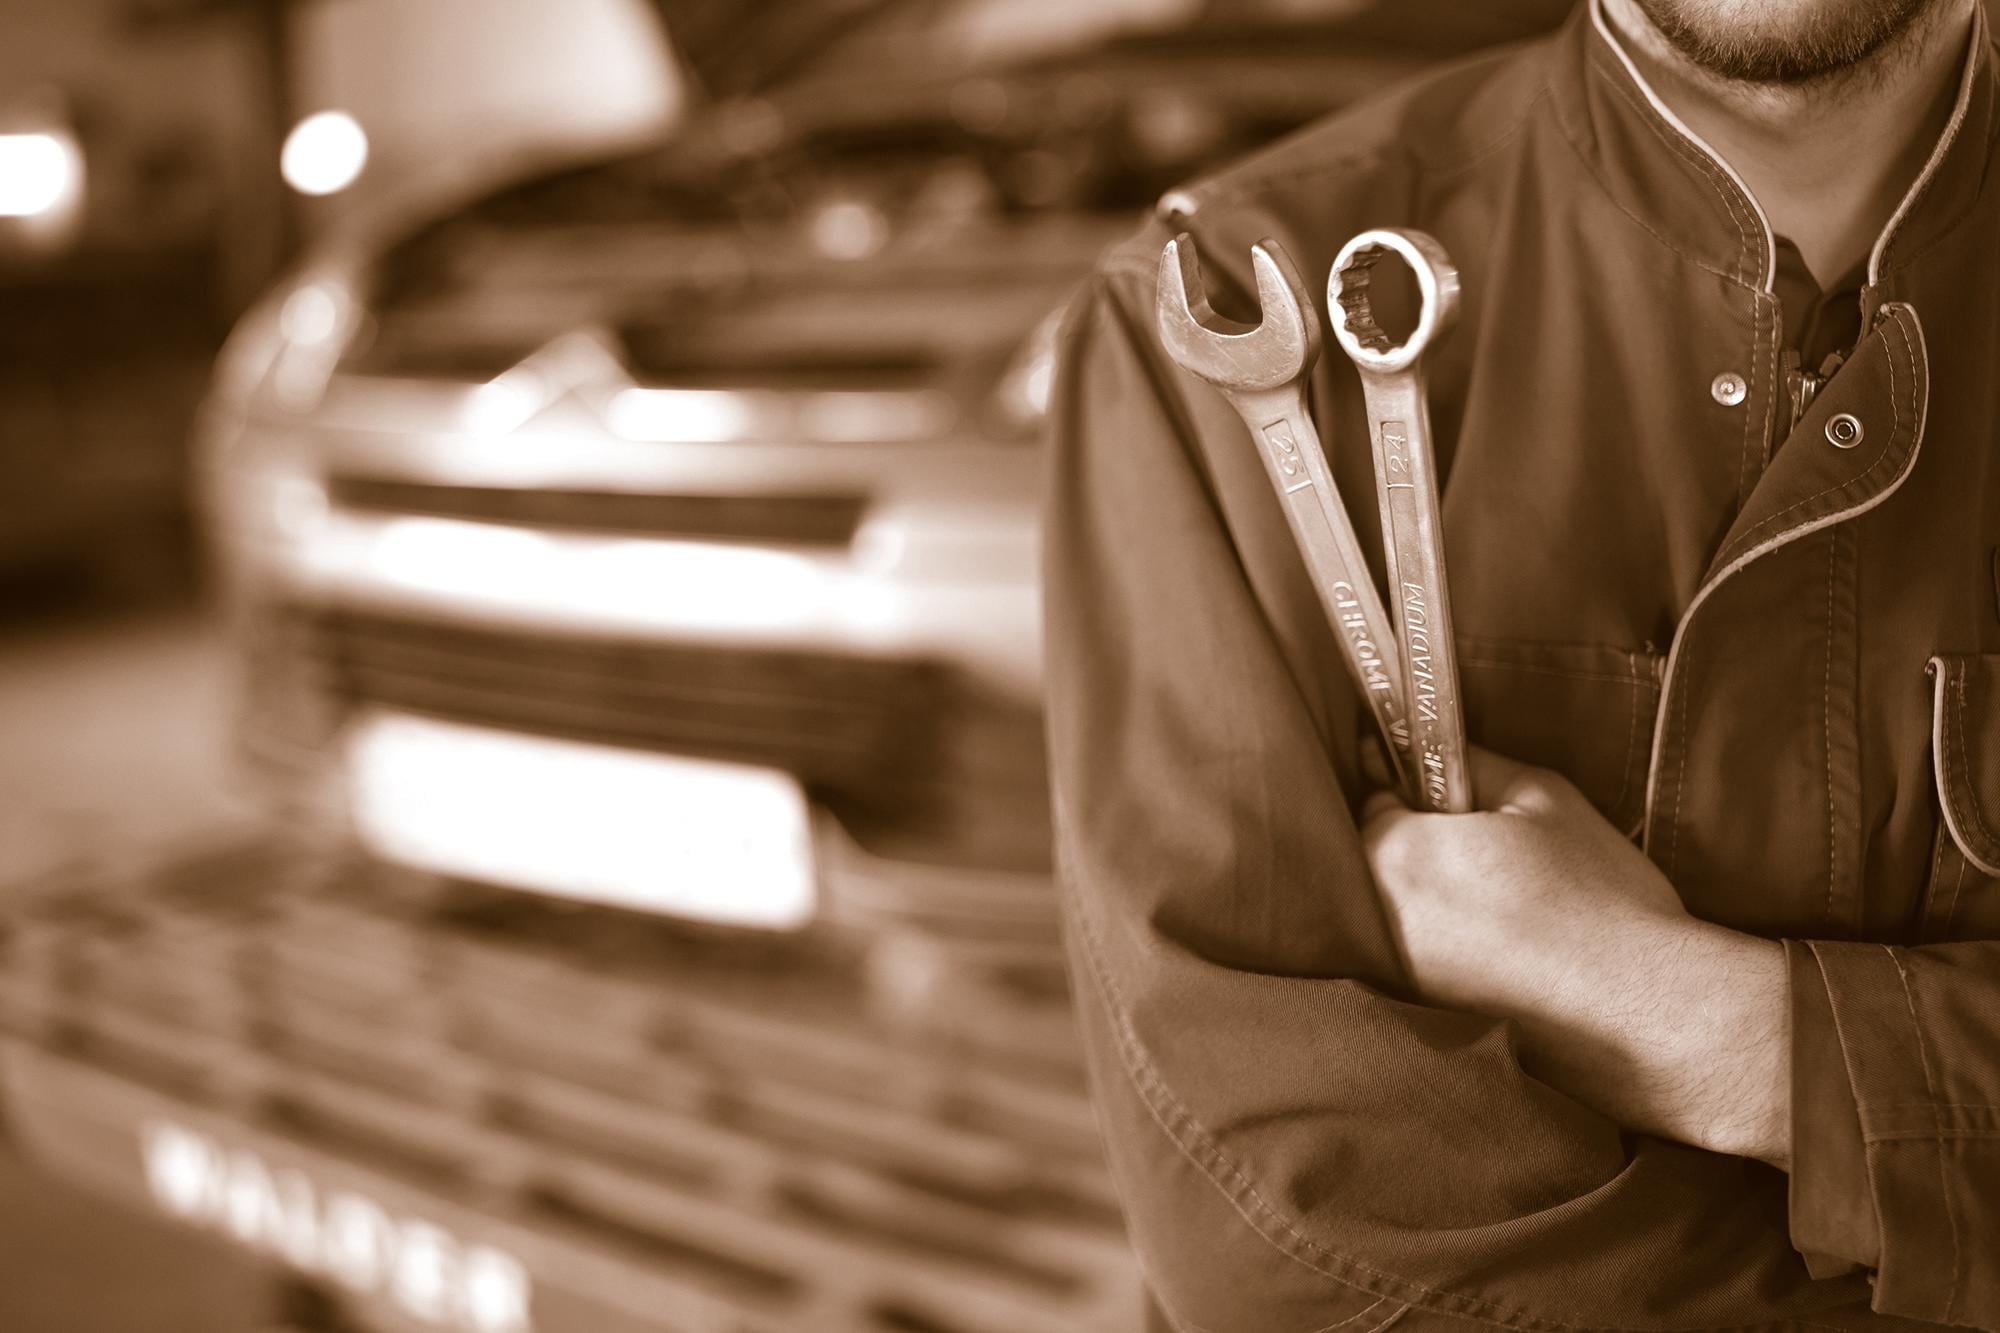 auto mechanic holding wrenches